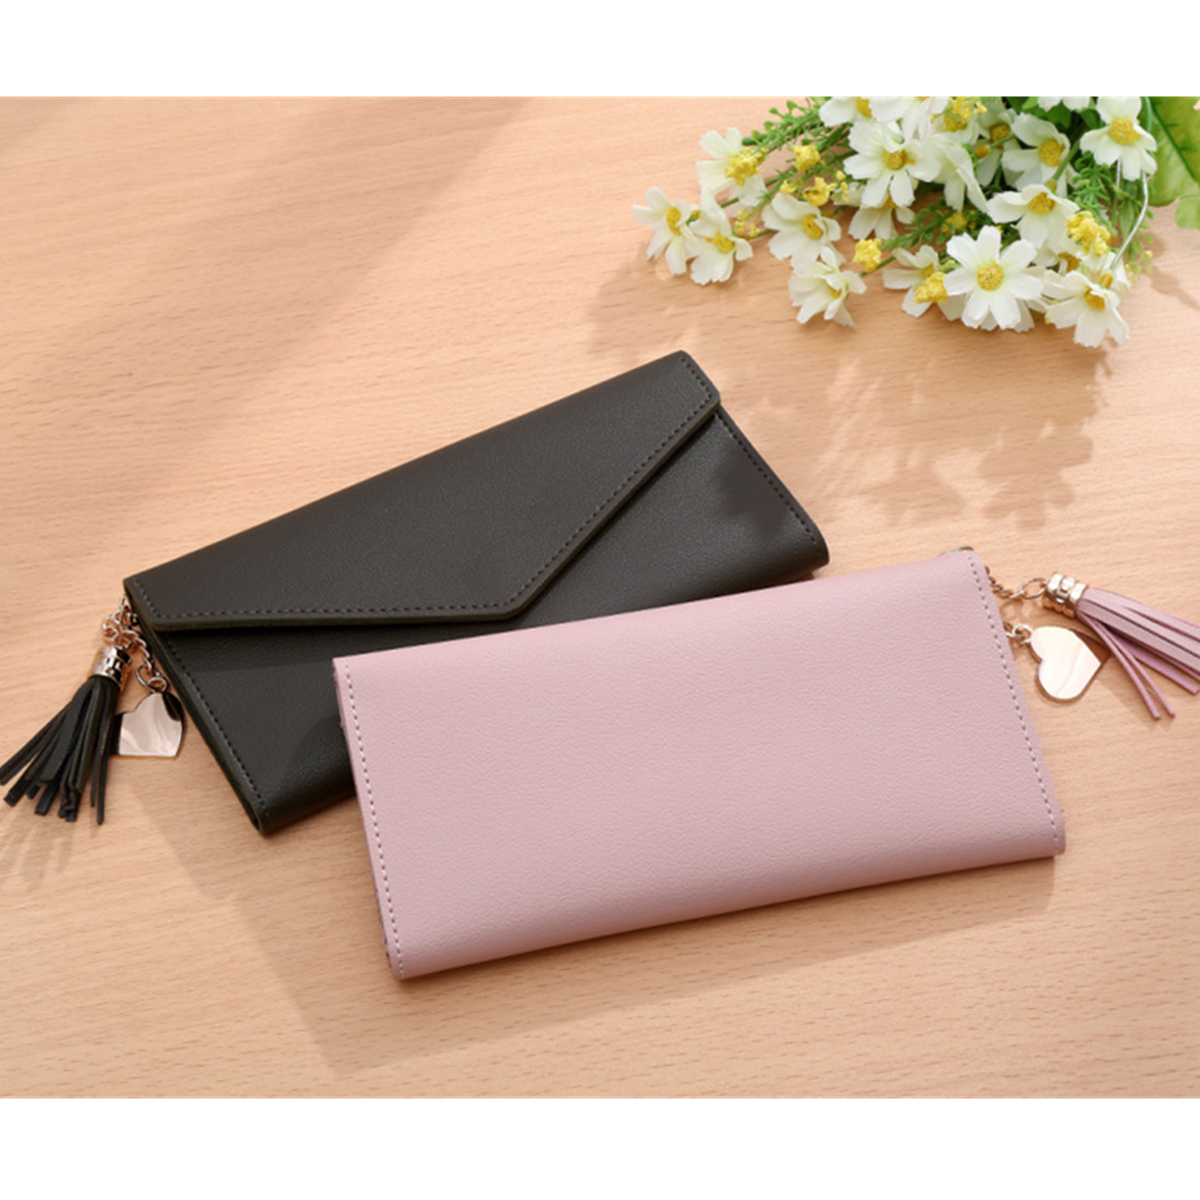 Women Long Purse Multi Card Slots PU Leather Phone Wallet Envelope Clutch Bags